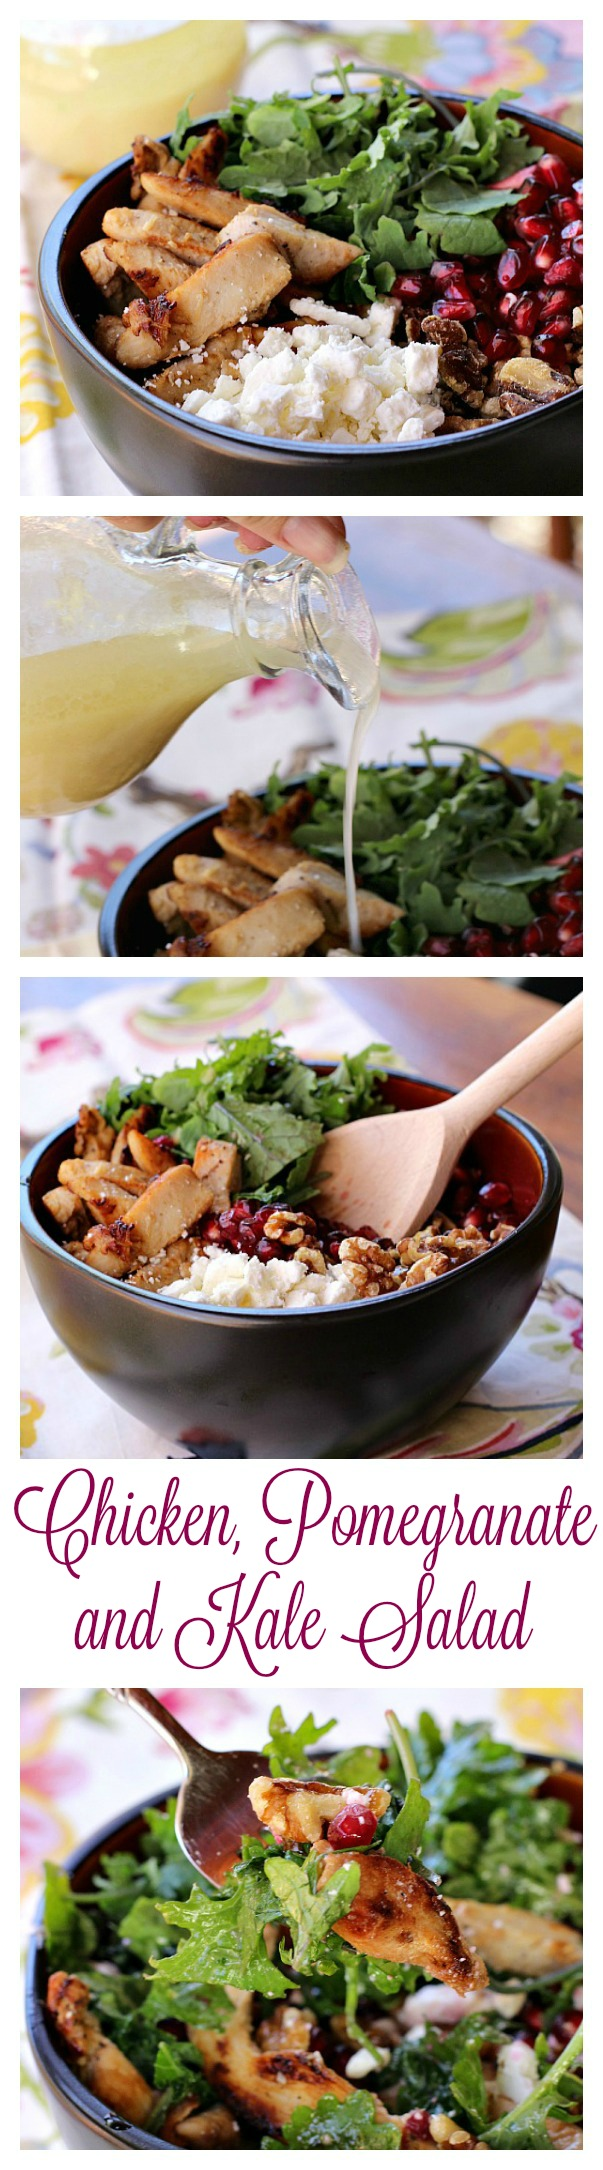 Chicken, Pomegranate and Kale Salad Collage